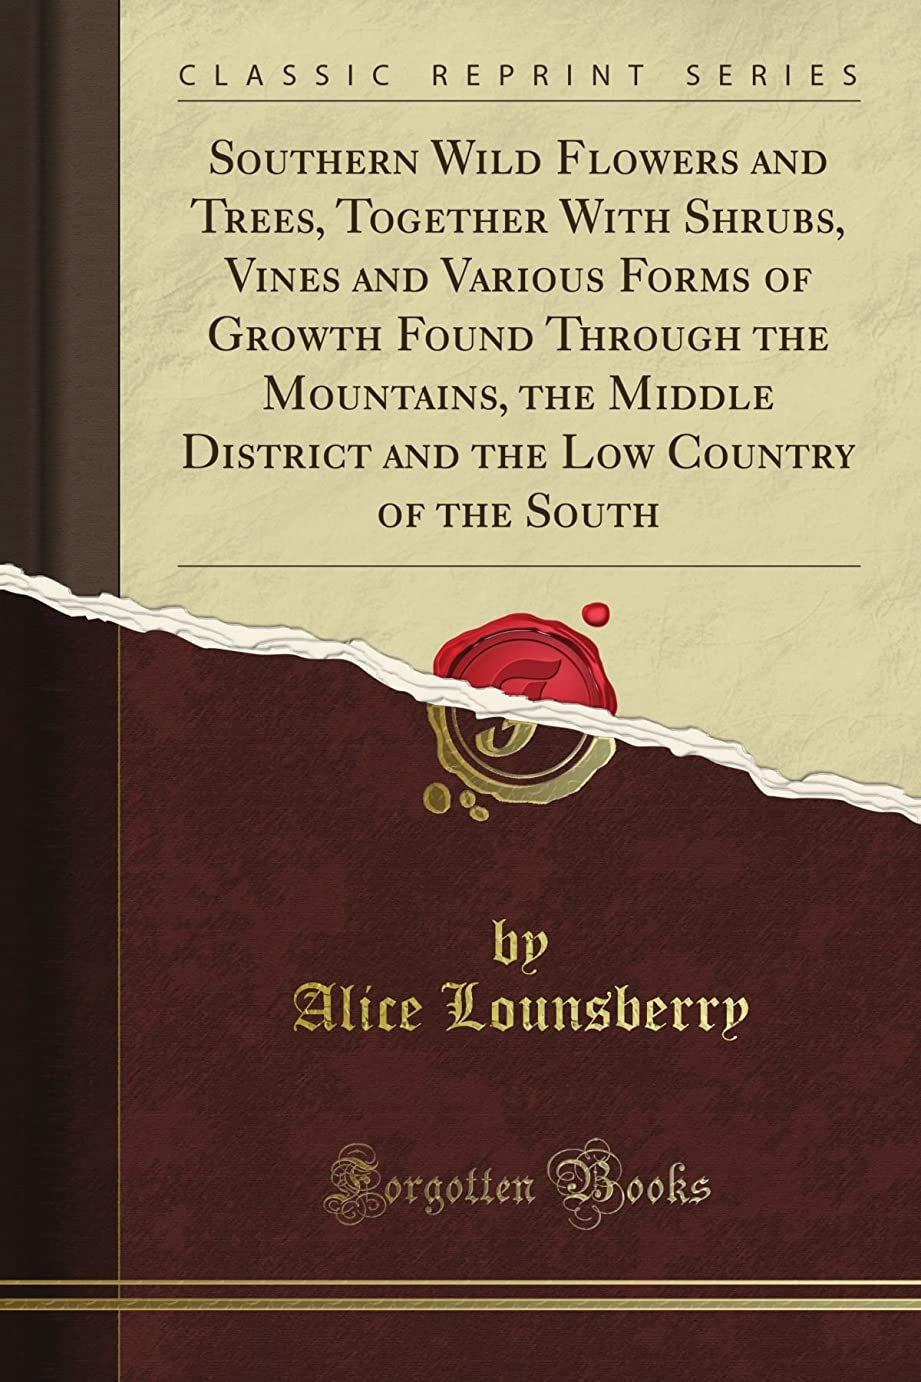 ホーム美容師絶滅したSouthern Wild Flowers and Trees, Together With Shrubs, Vines and Various Forms of Growth Found Through the Mountains, the Middle District and the Low Country of the South (Classic Reprint)